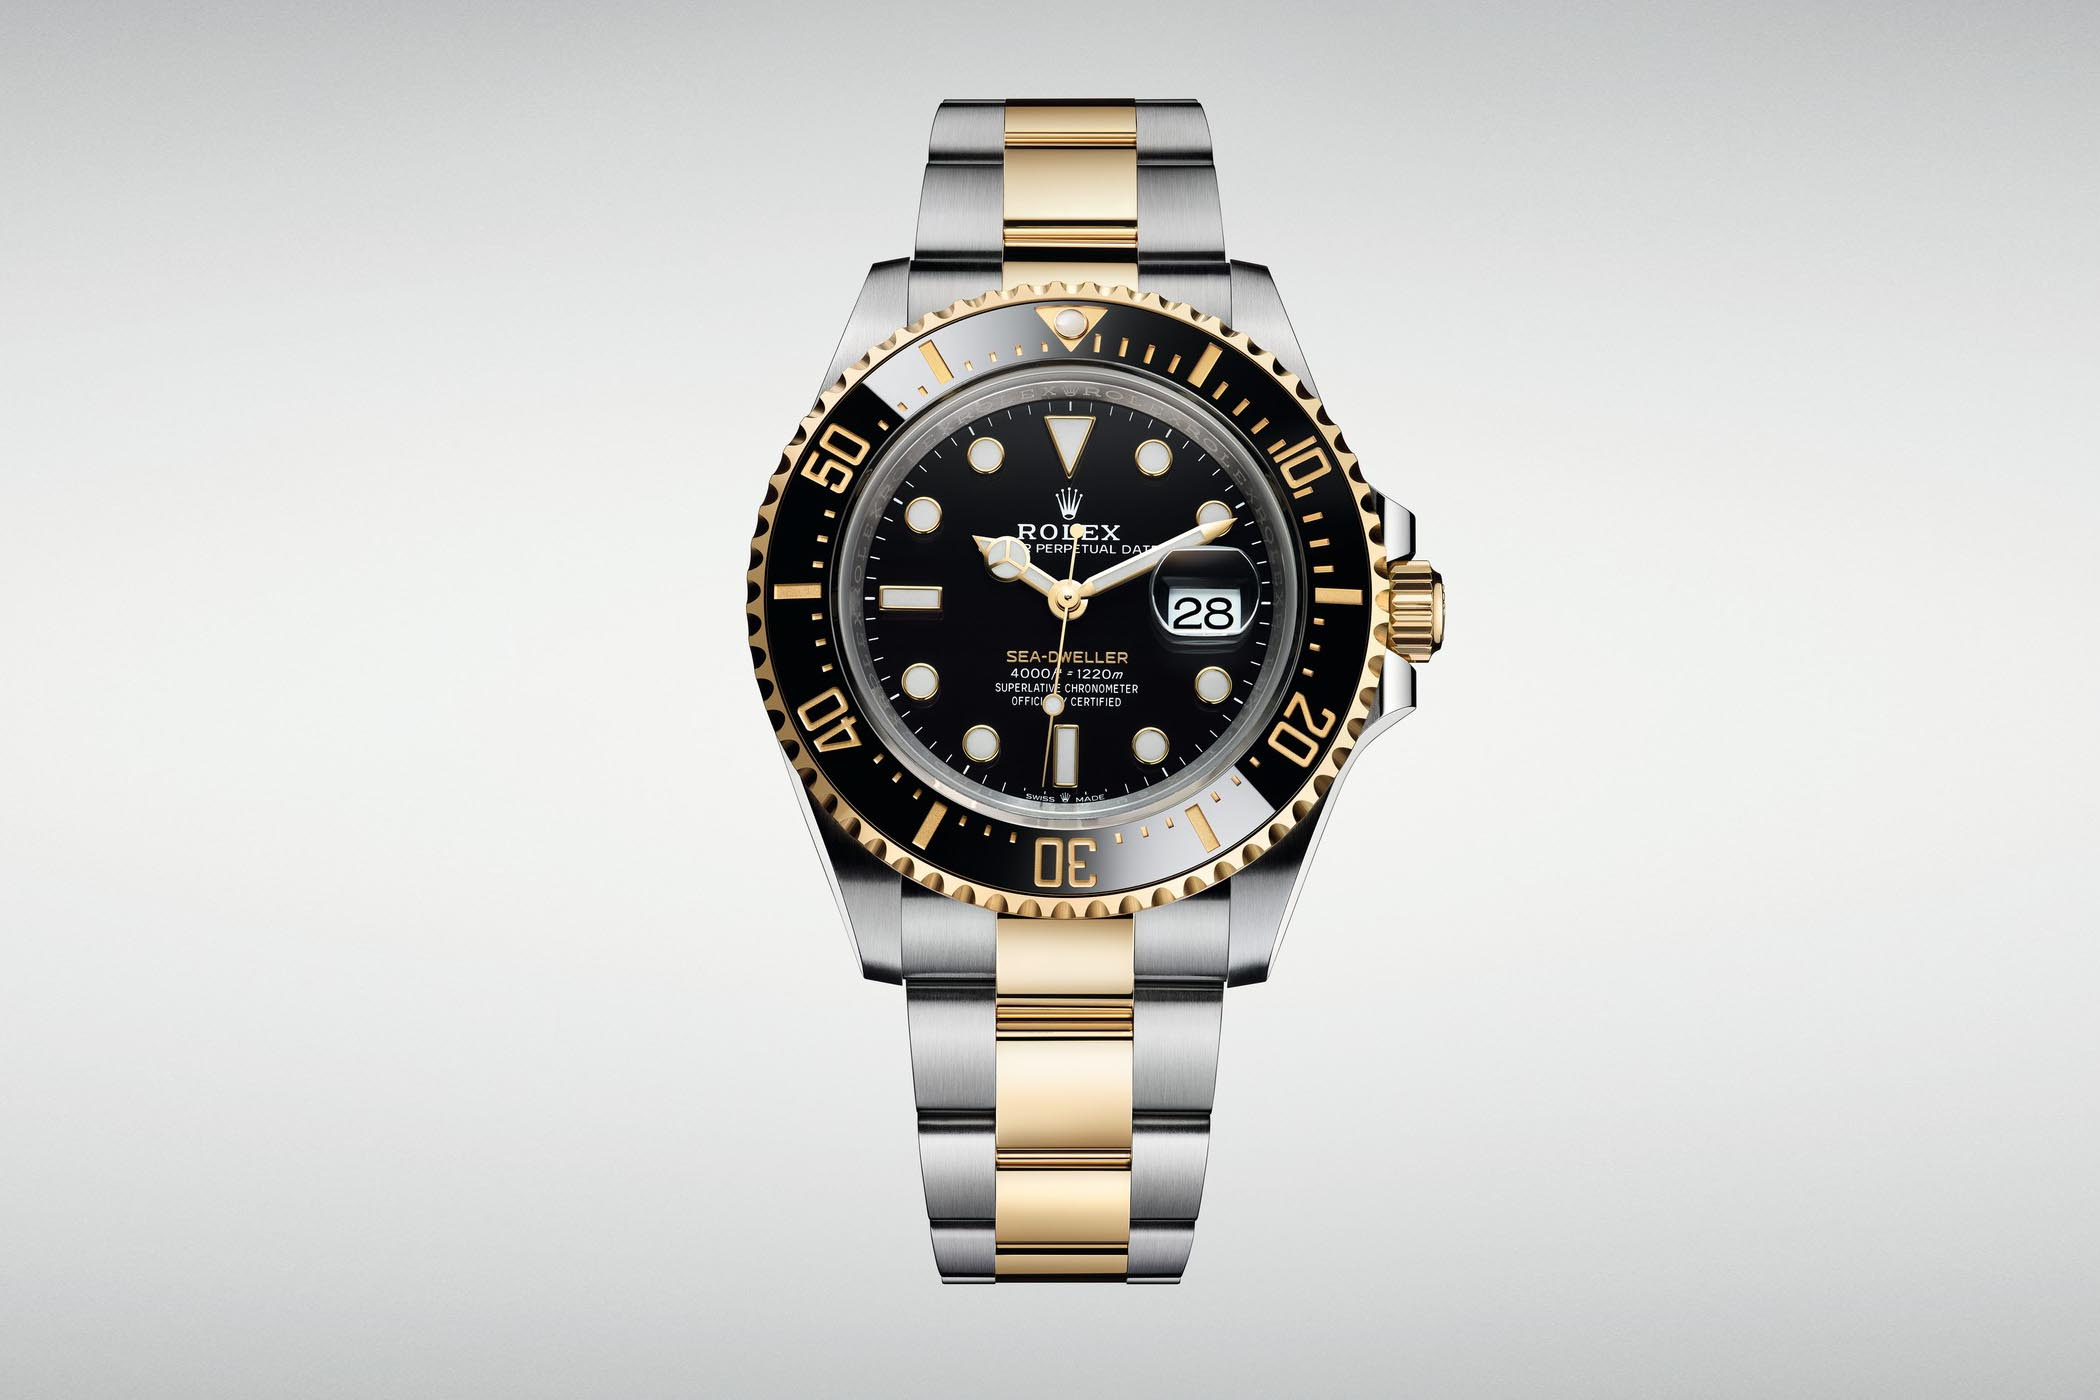 7fa7fc6b309 The large dive watch of Rolex gets a surprising two-tone touch, with yellow  gold accents.